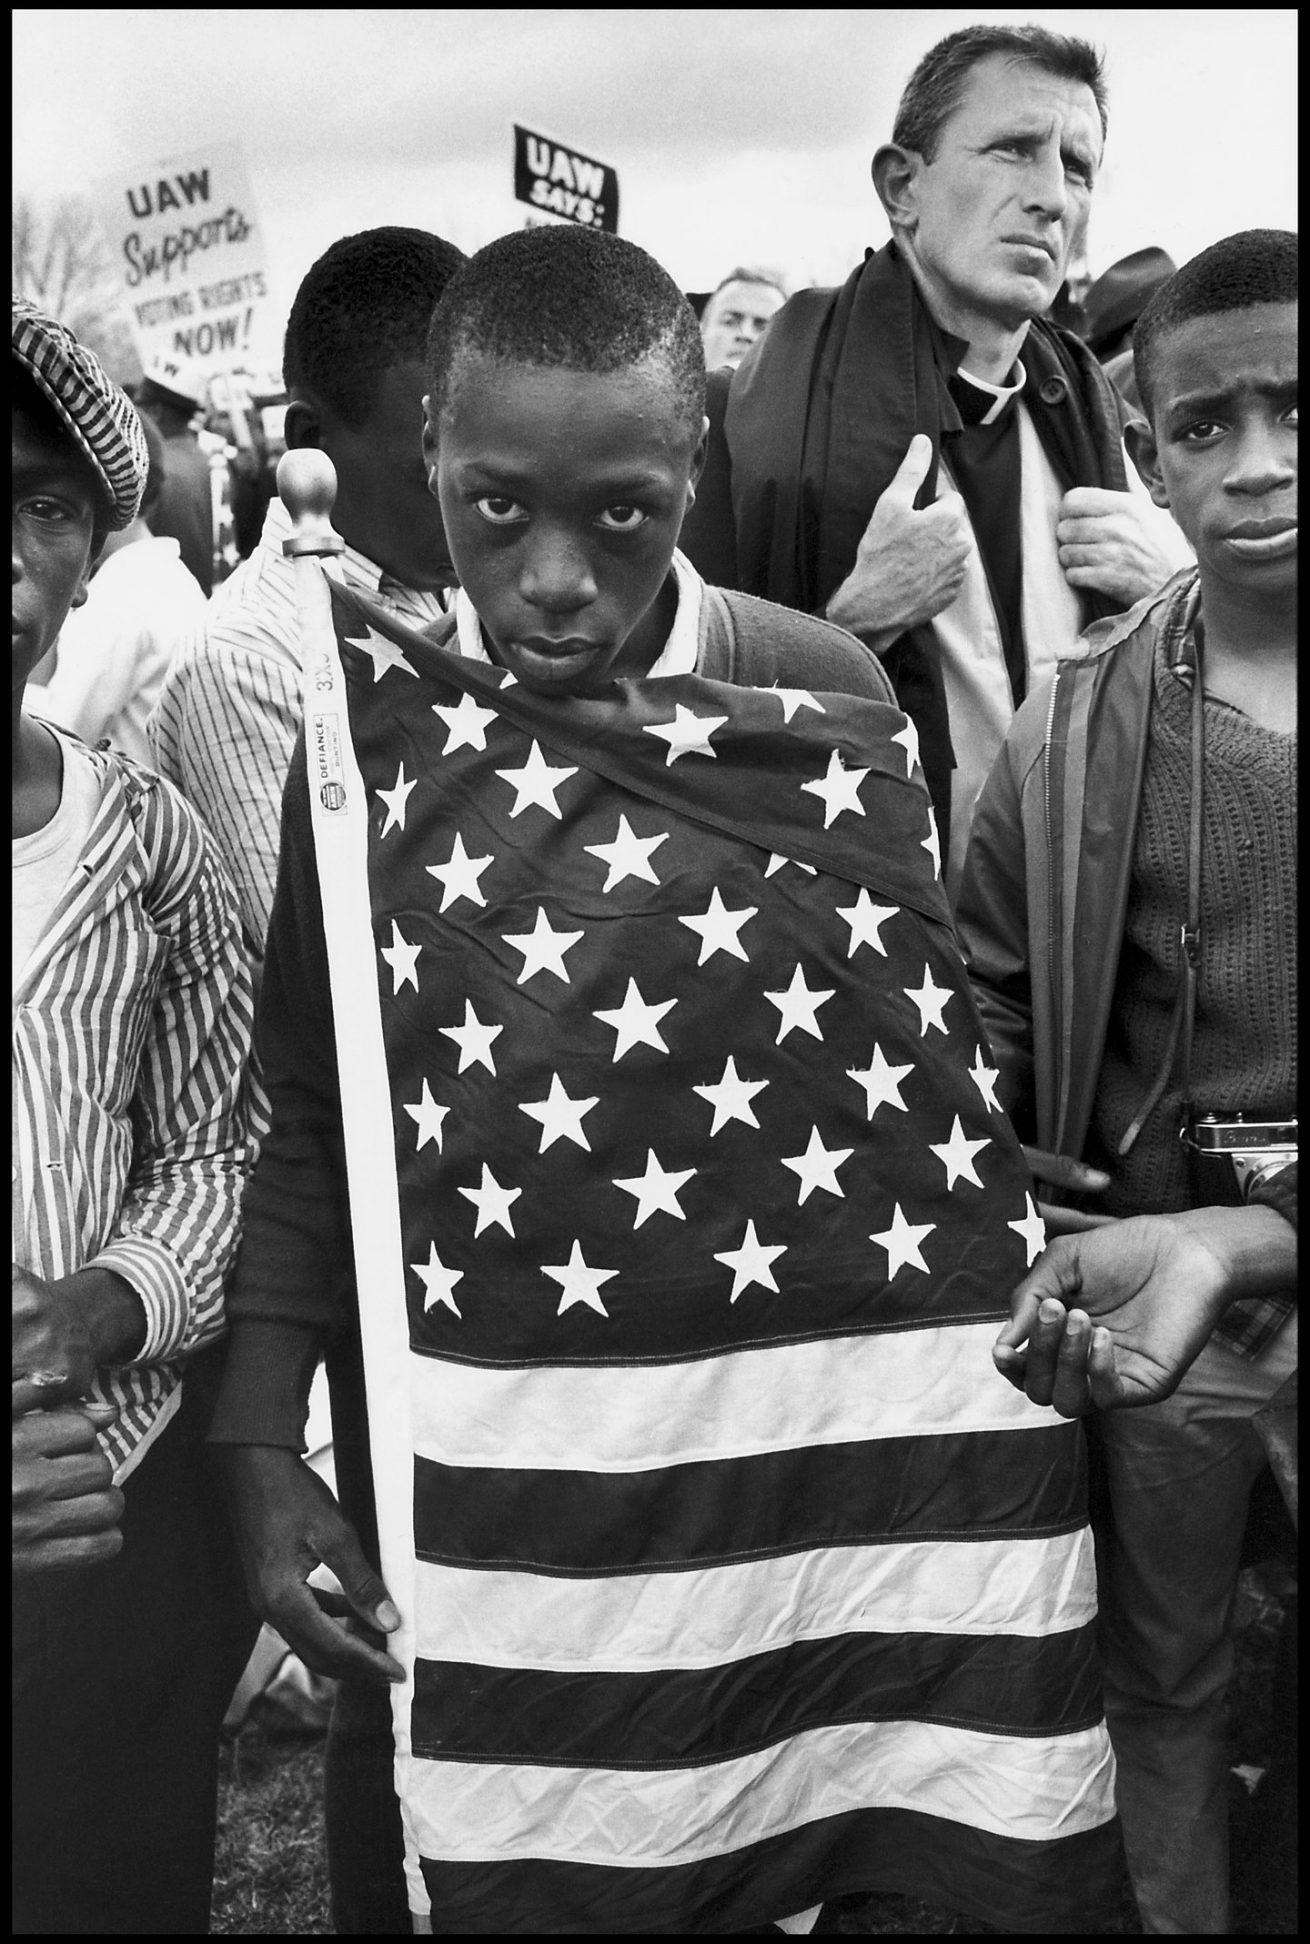 magnum photos ve vouge'dan black lives matter'a destek